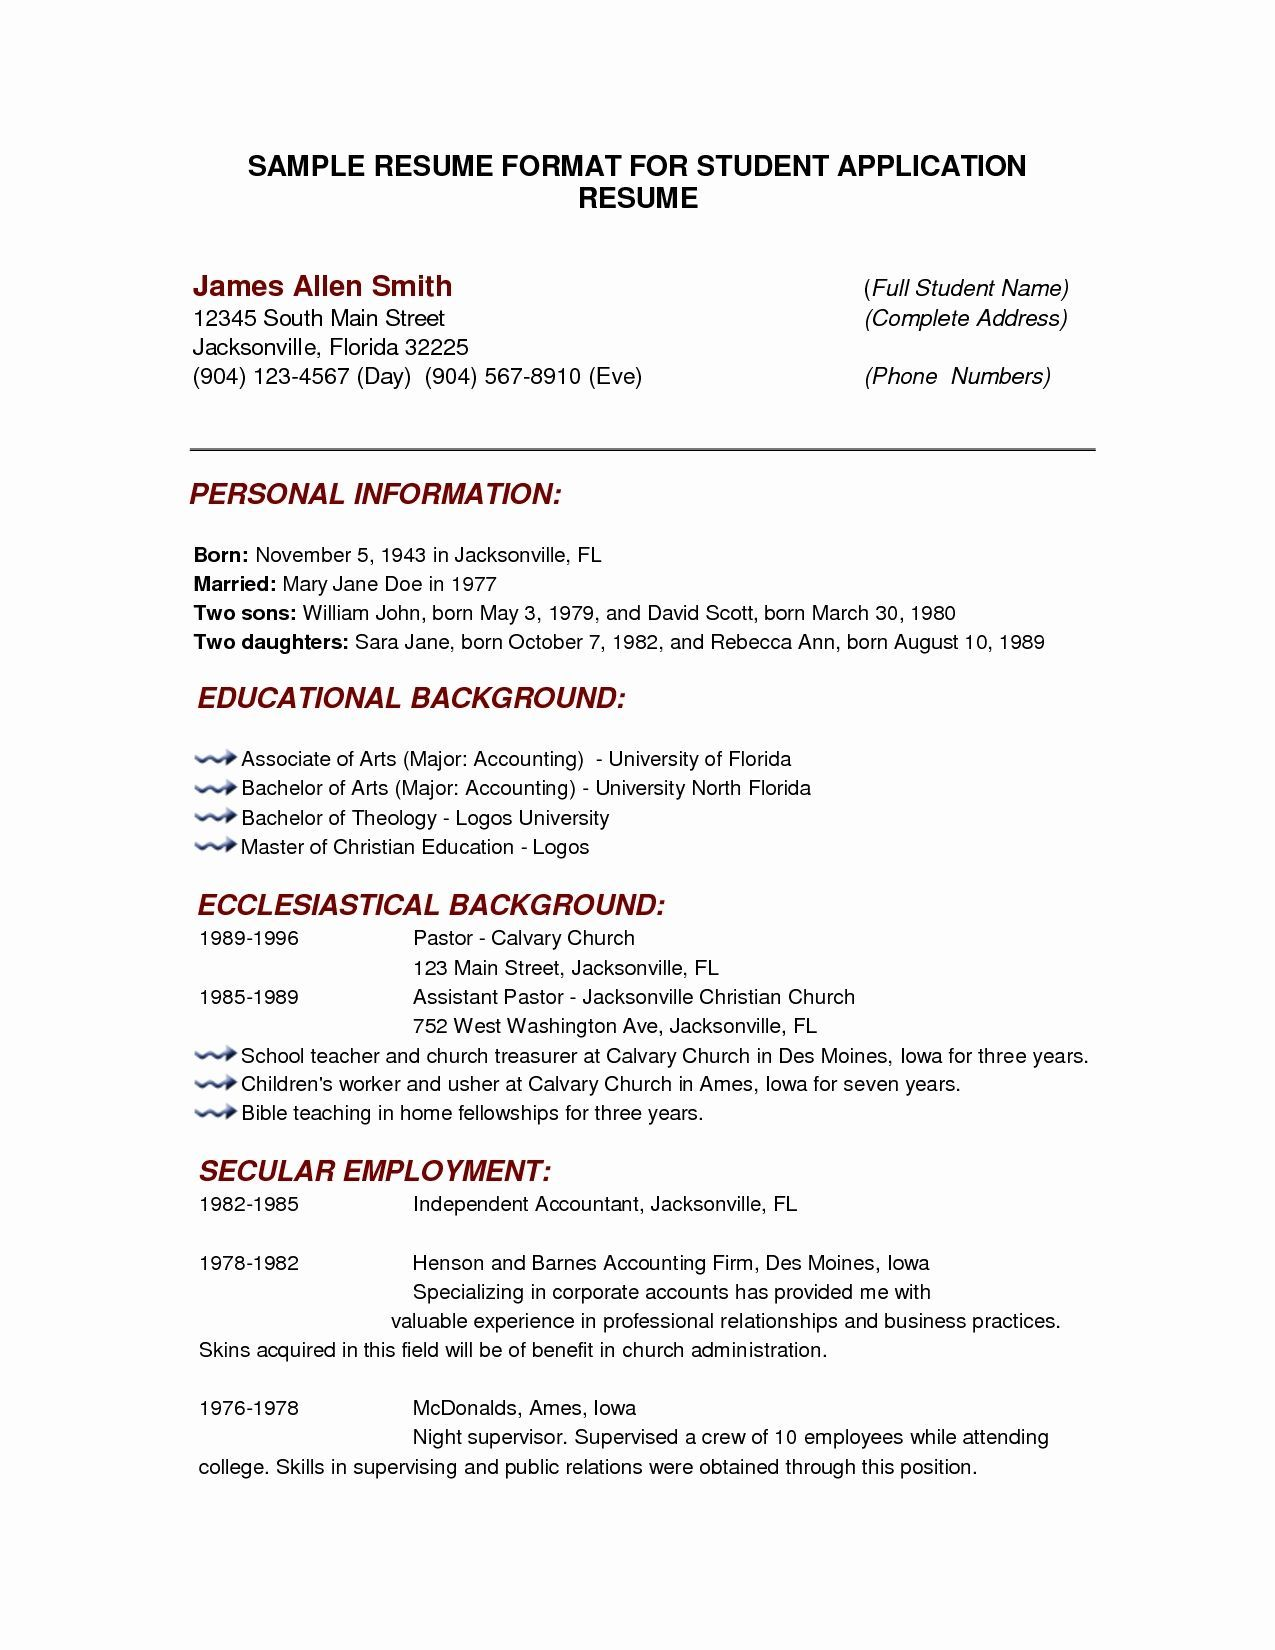 Pin by Magazine on Template Share | Sample resume cover letter ...